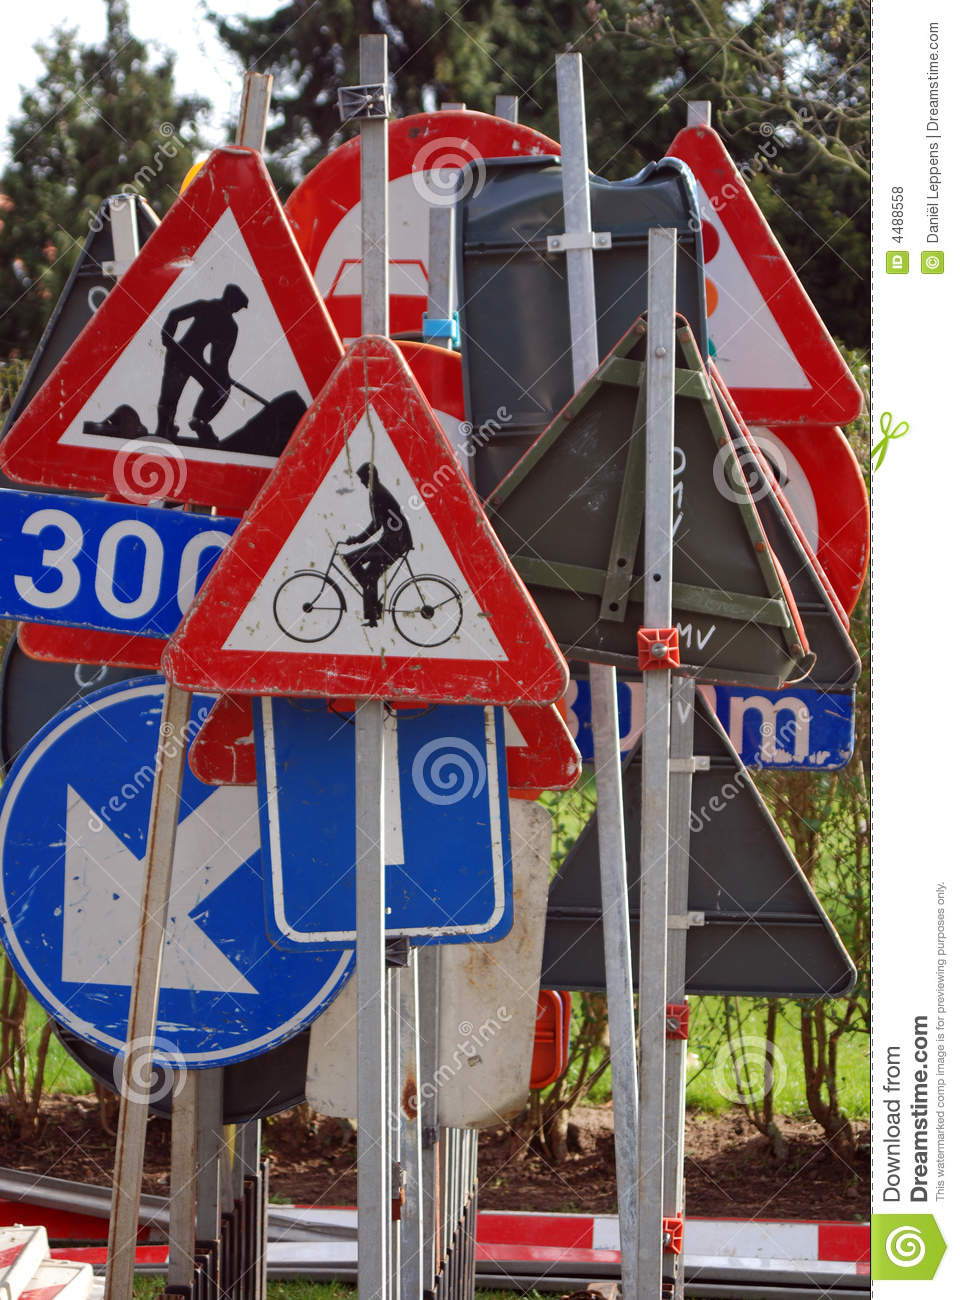 Collection of traffic signs